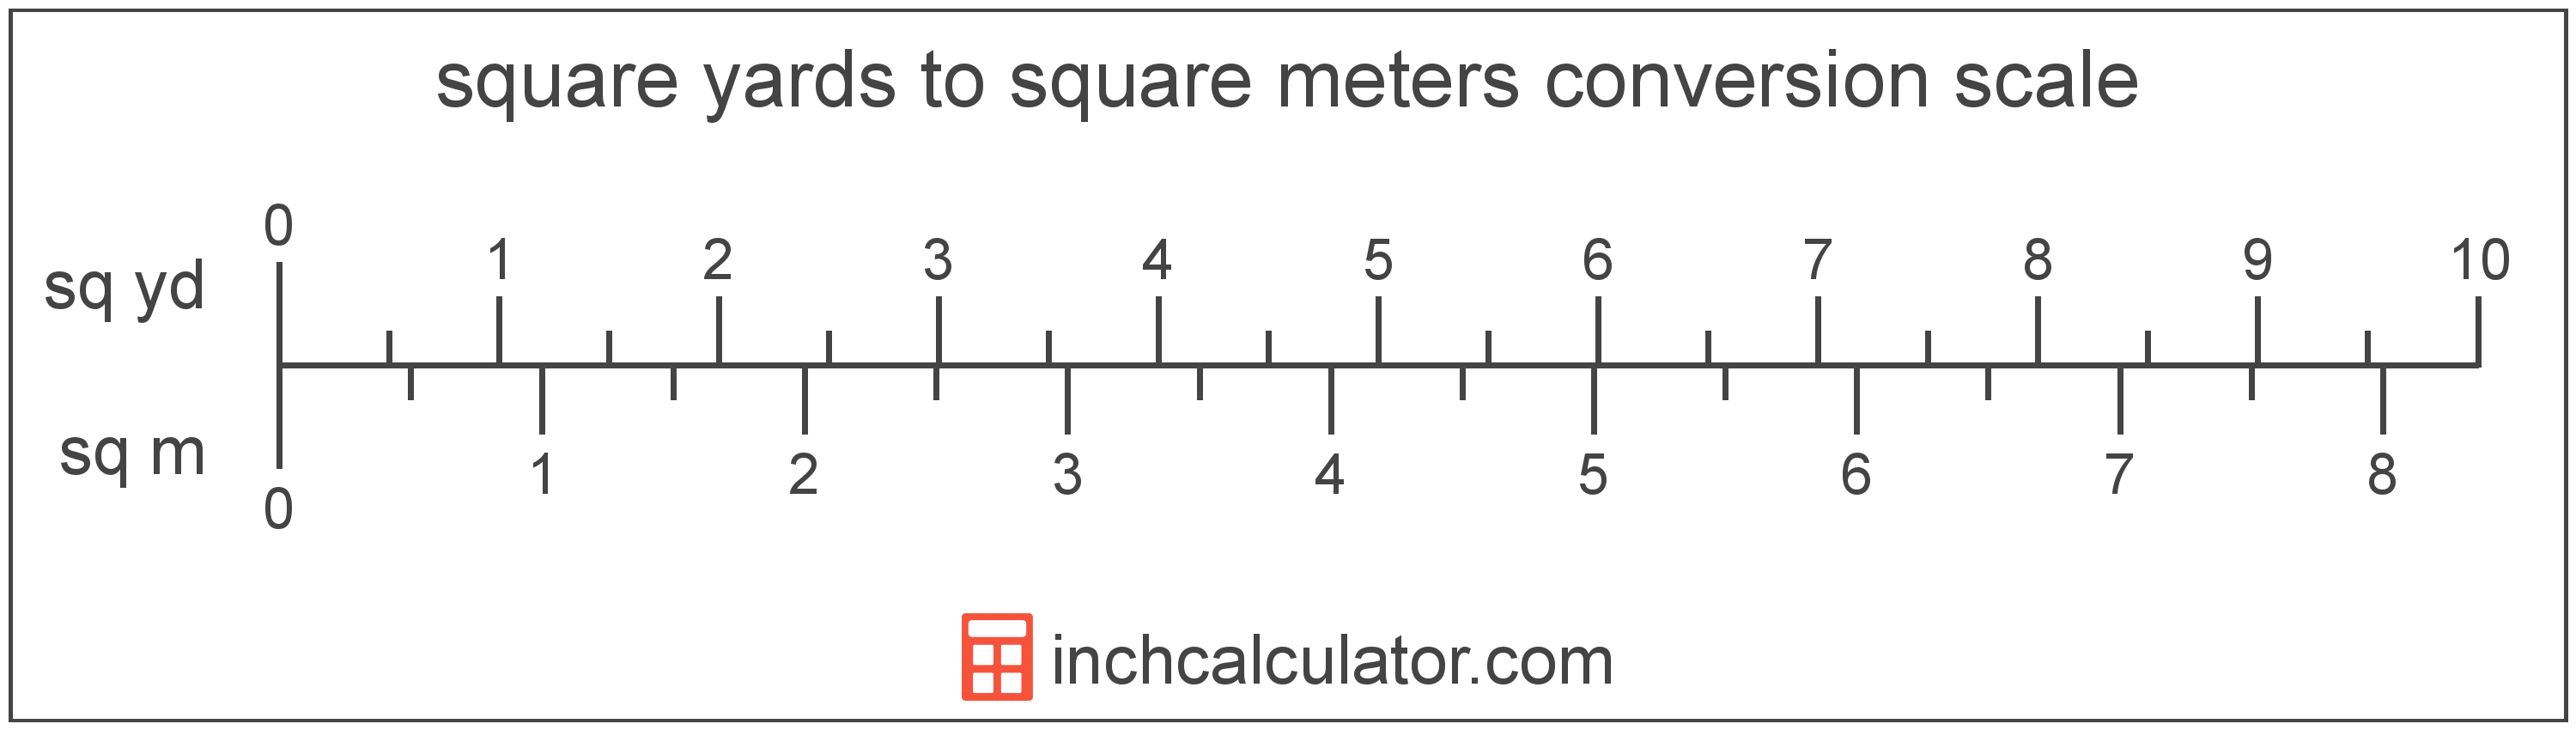 conversion scale showing square yards and equivalent square meters area values